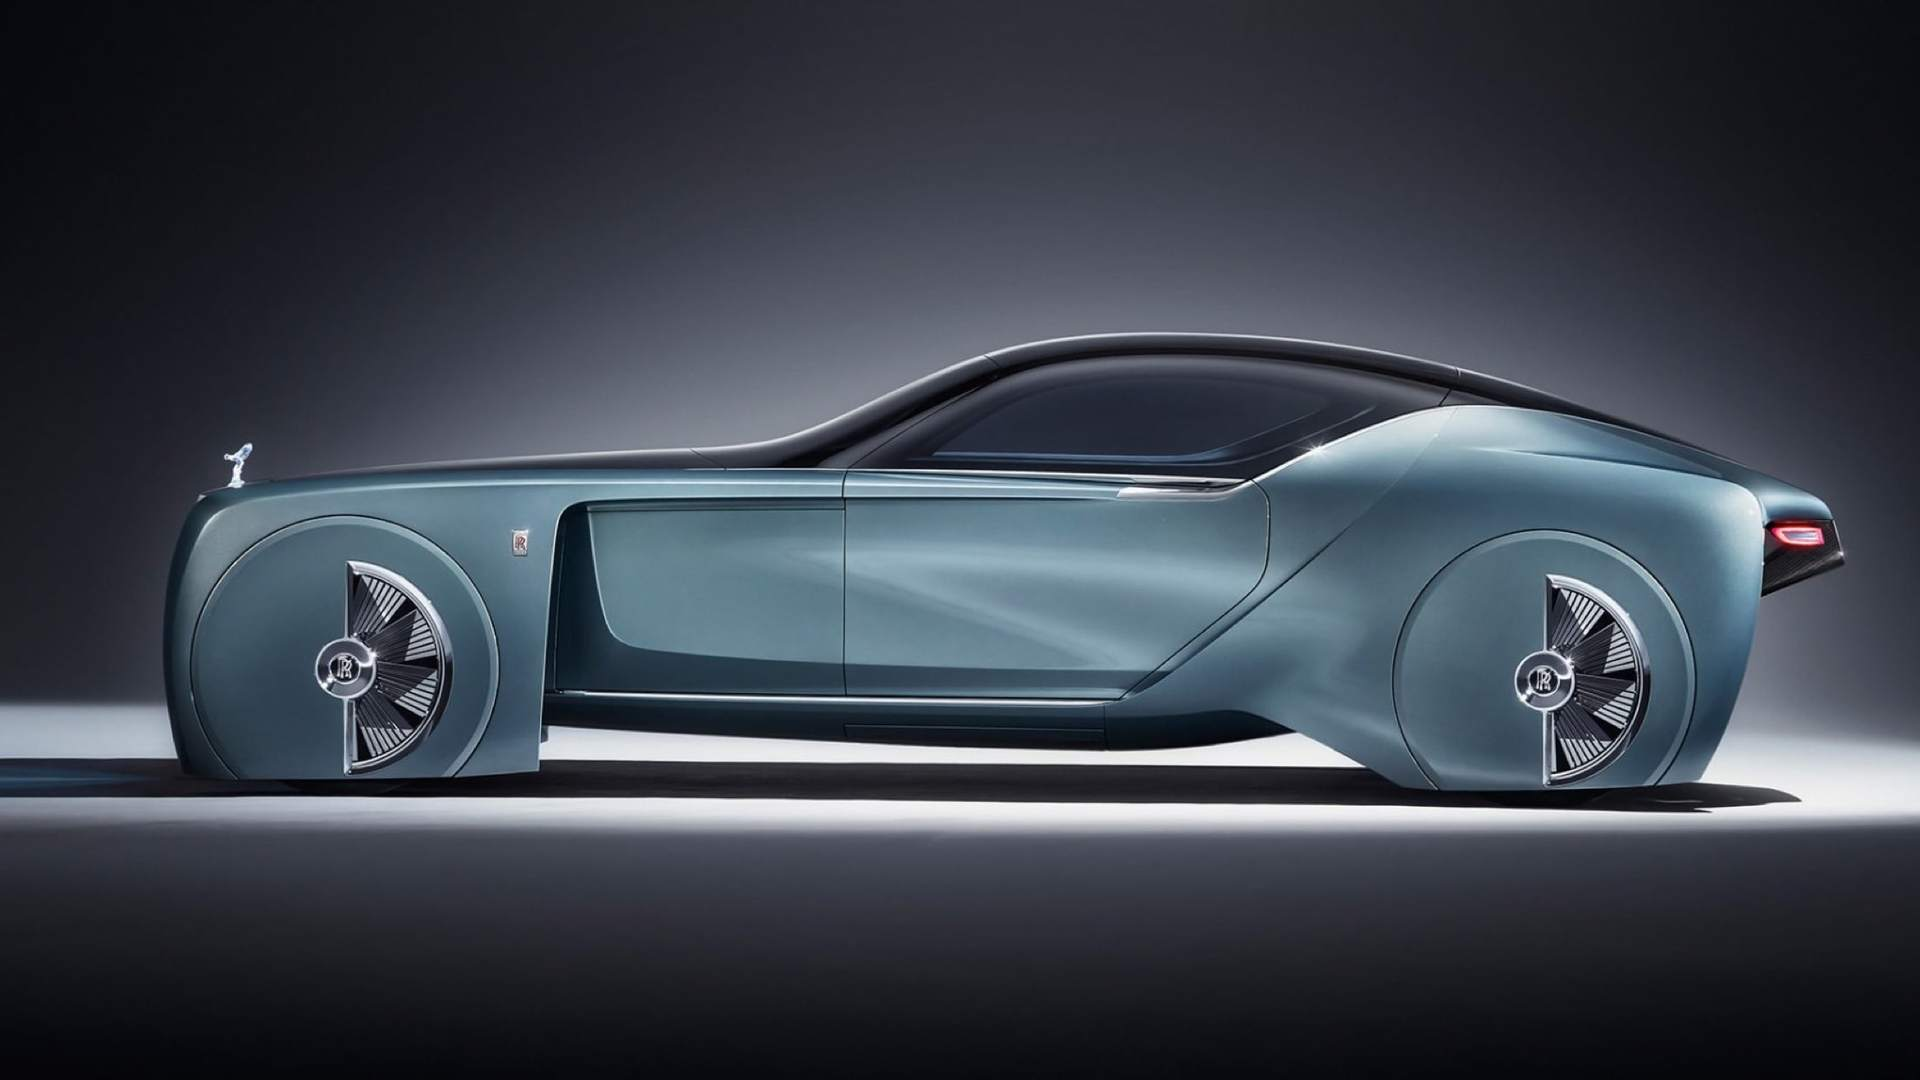 Side-on shot of the 103EX - a prototype electric vehicle by Rolls-Royce Motor Cars.